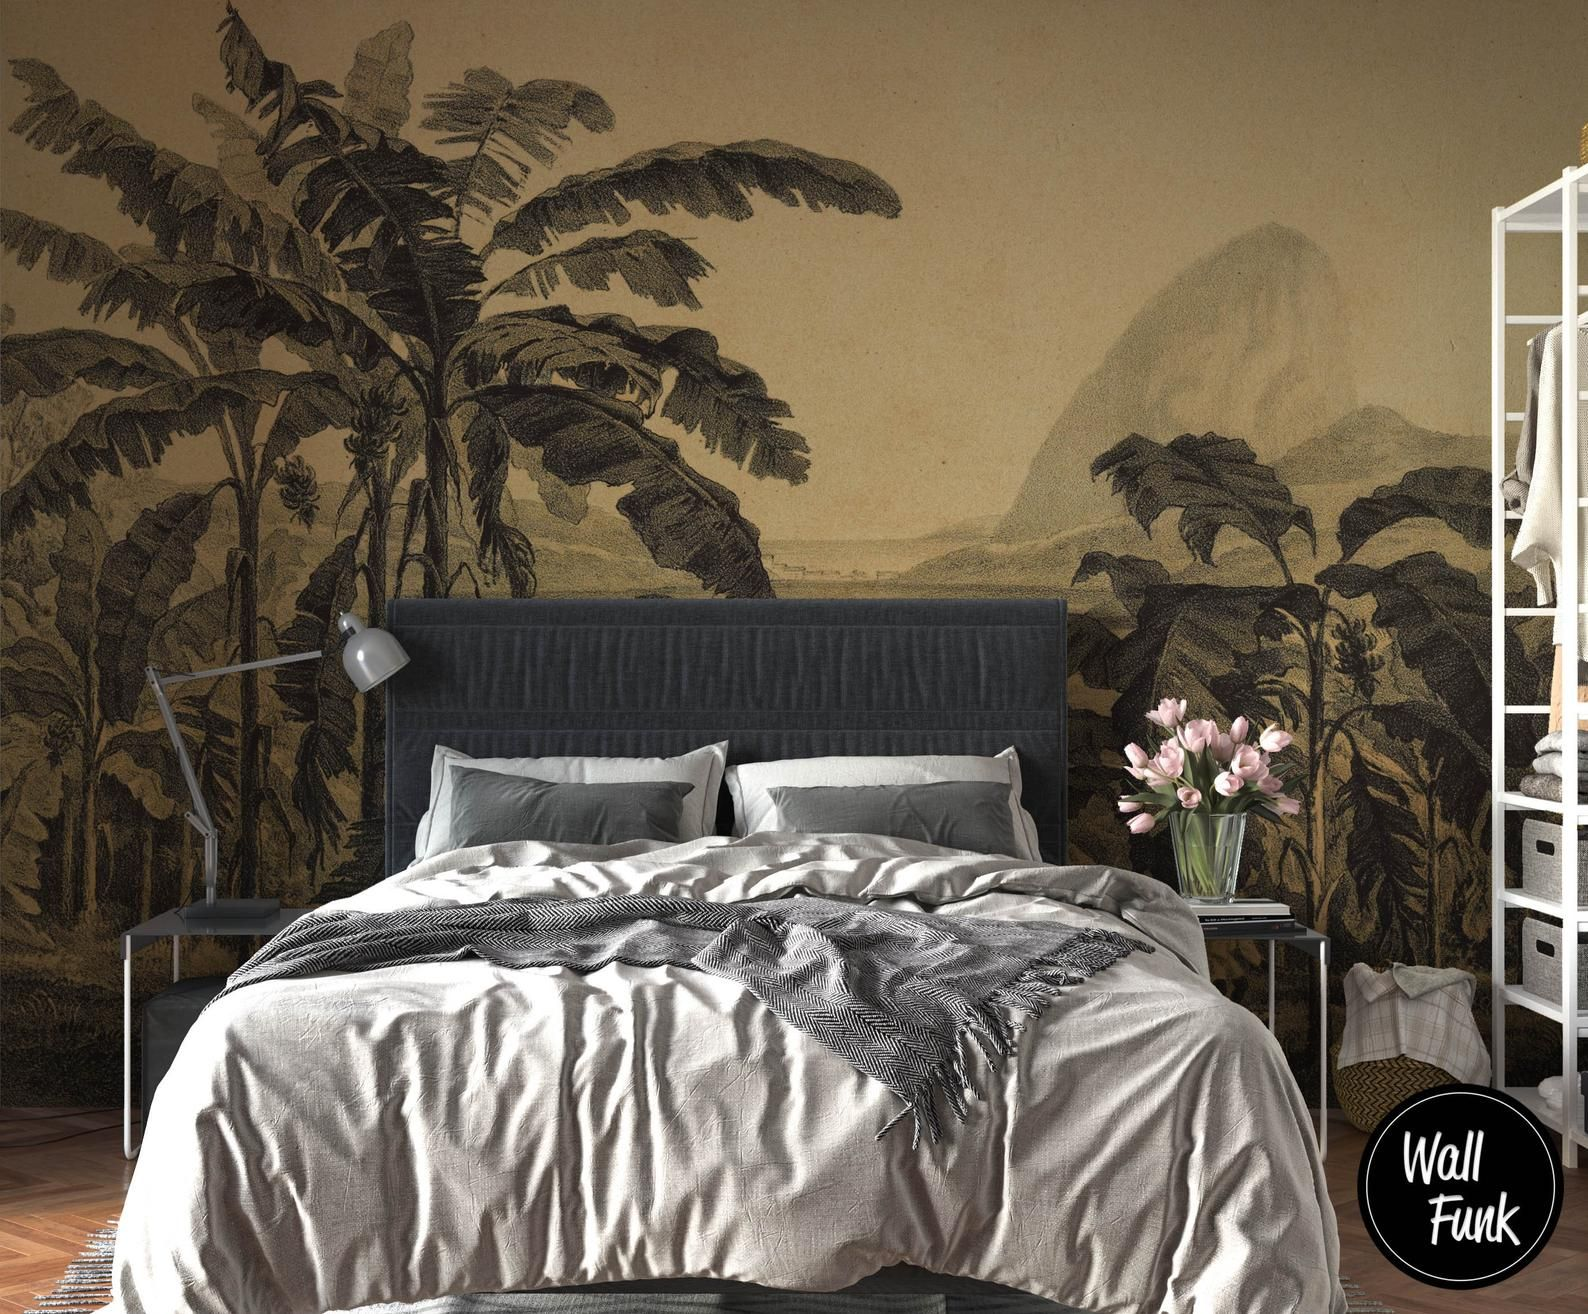 Removable Wallpaper Made With Recycled Paper, Easy To